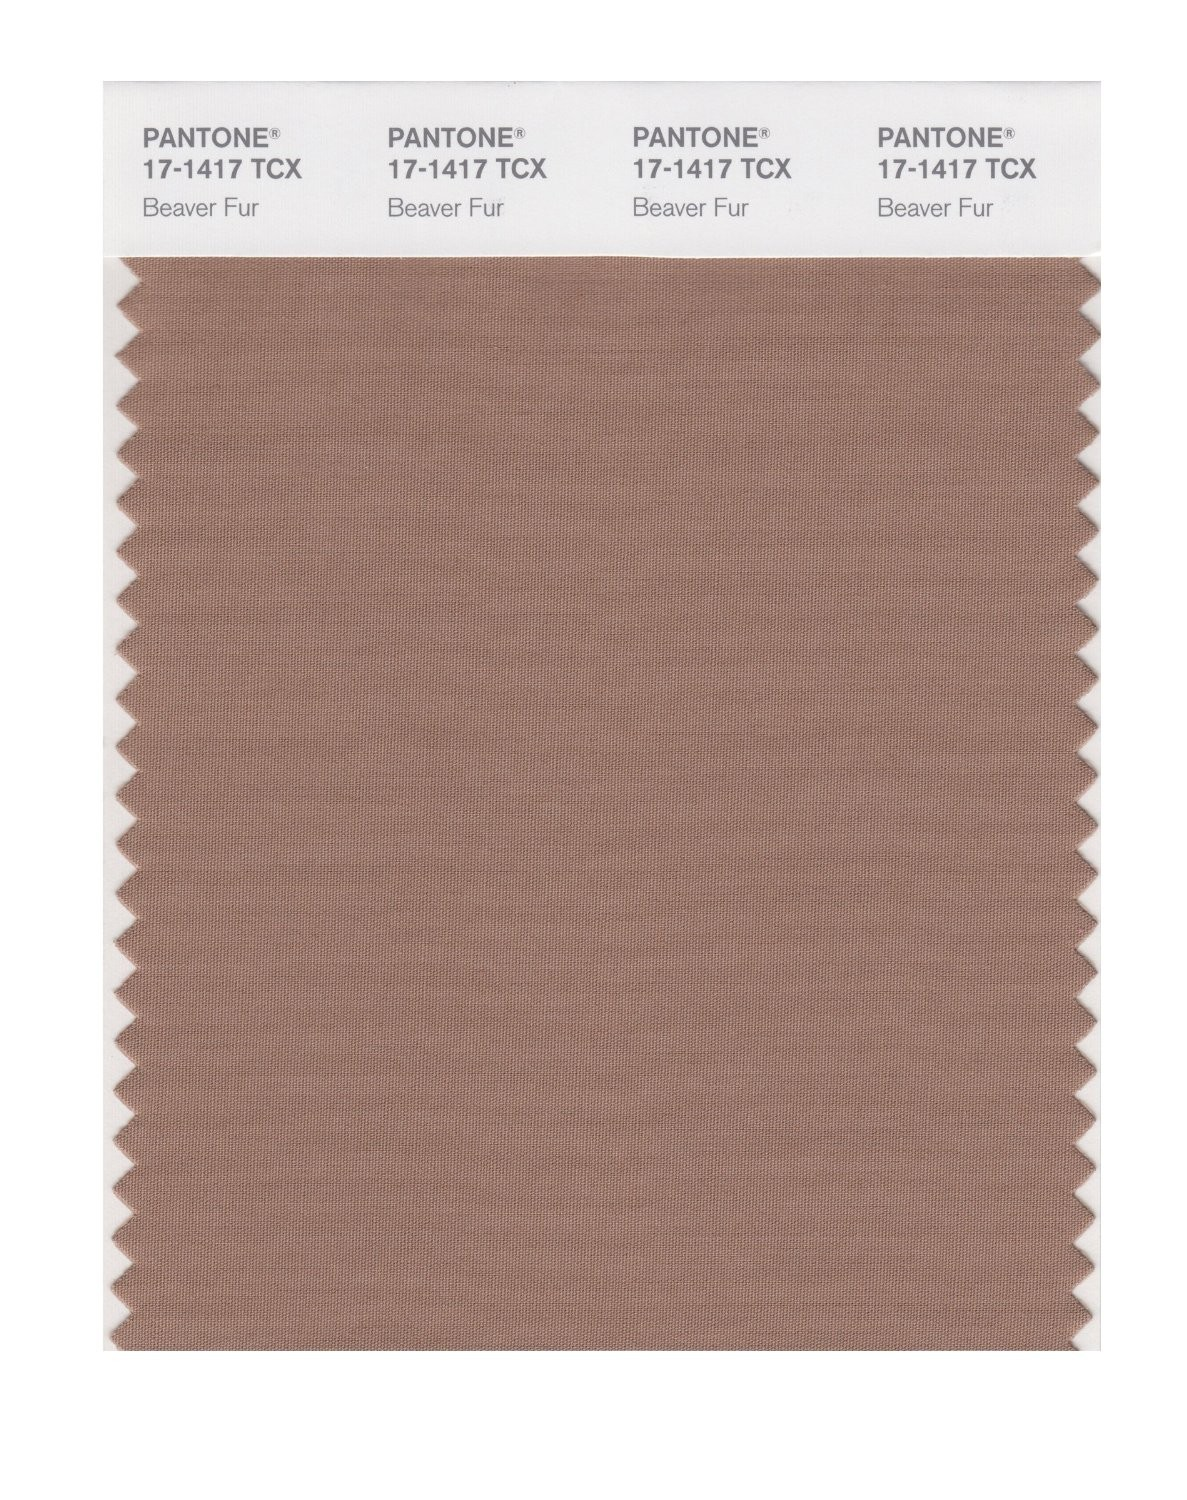 Pantone 17-1417 TCX Swatch Card Beaver Fur